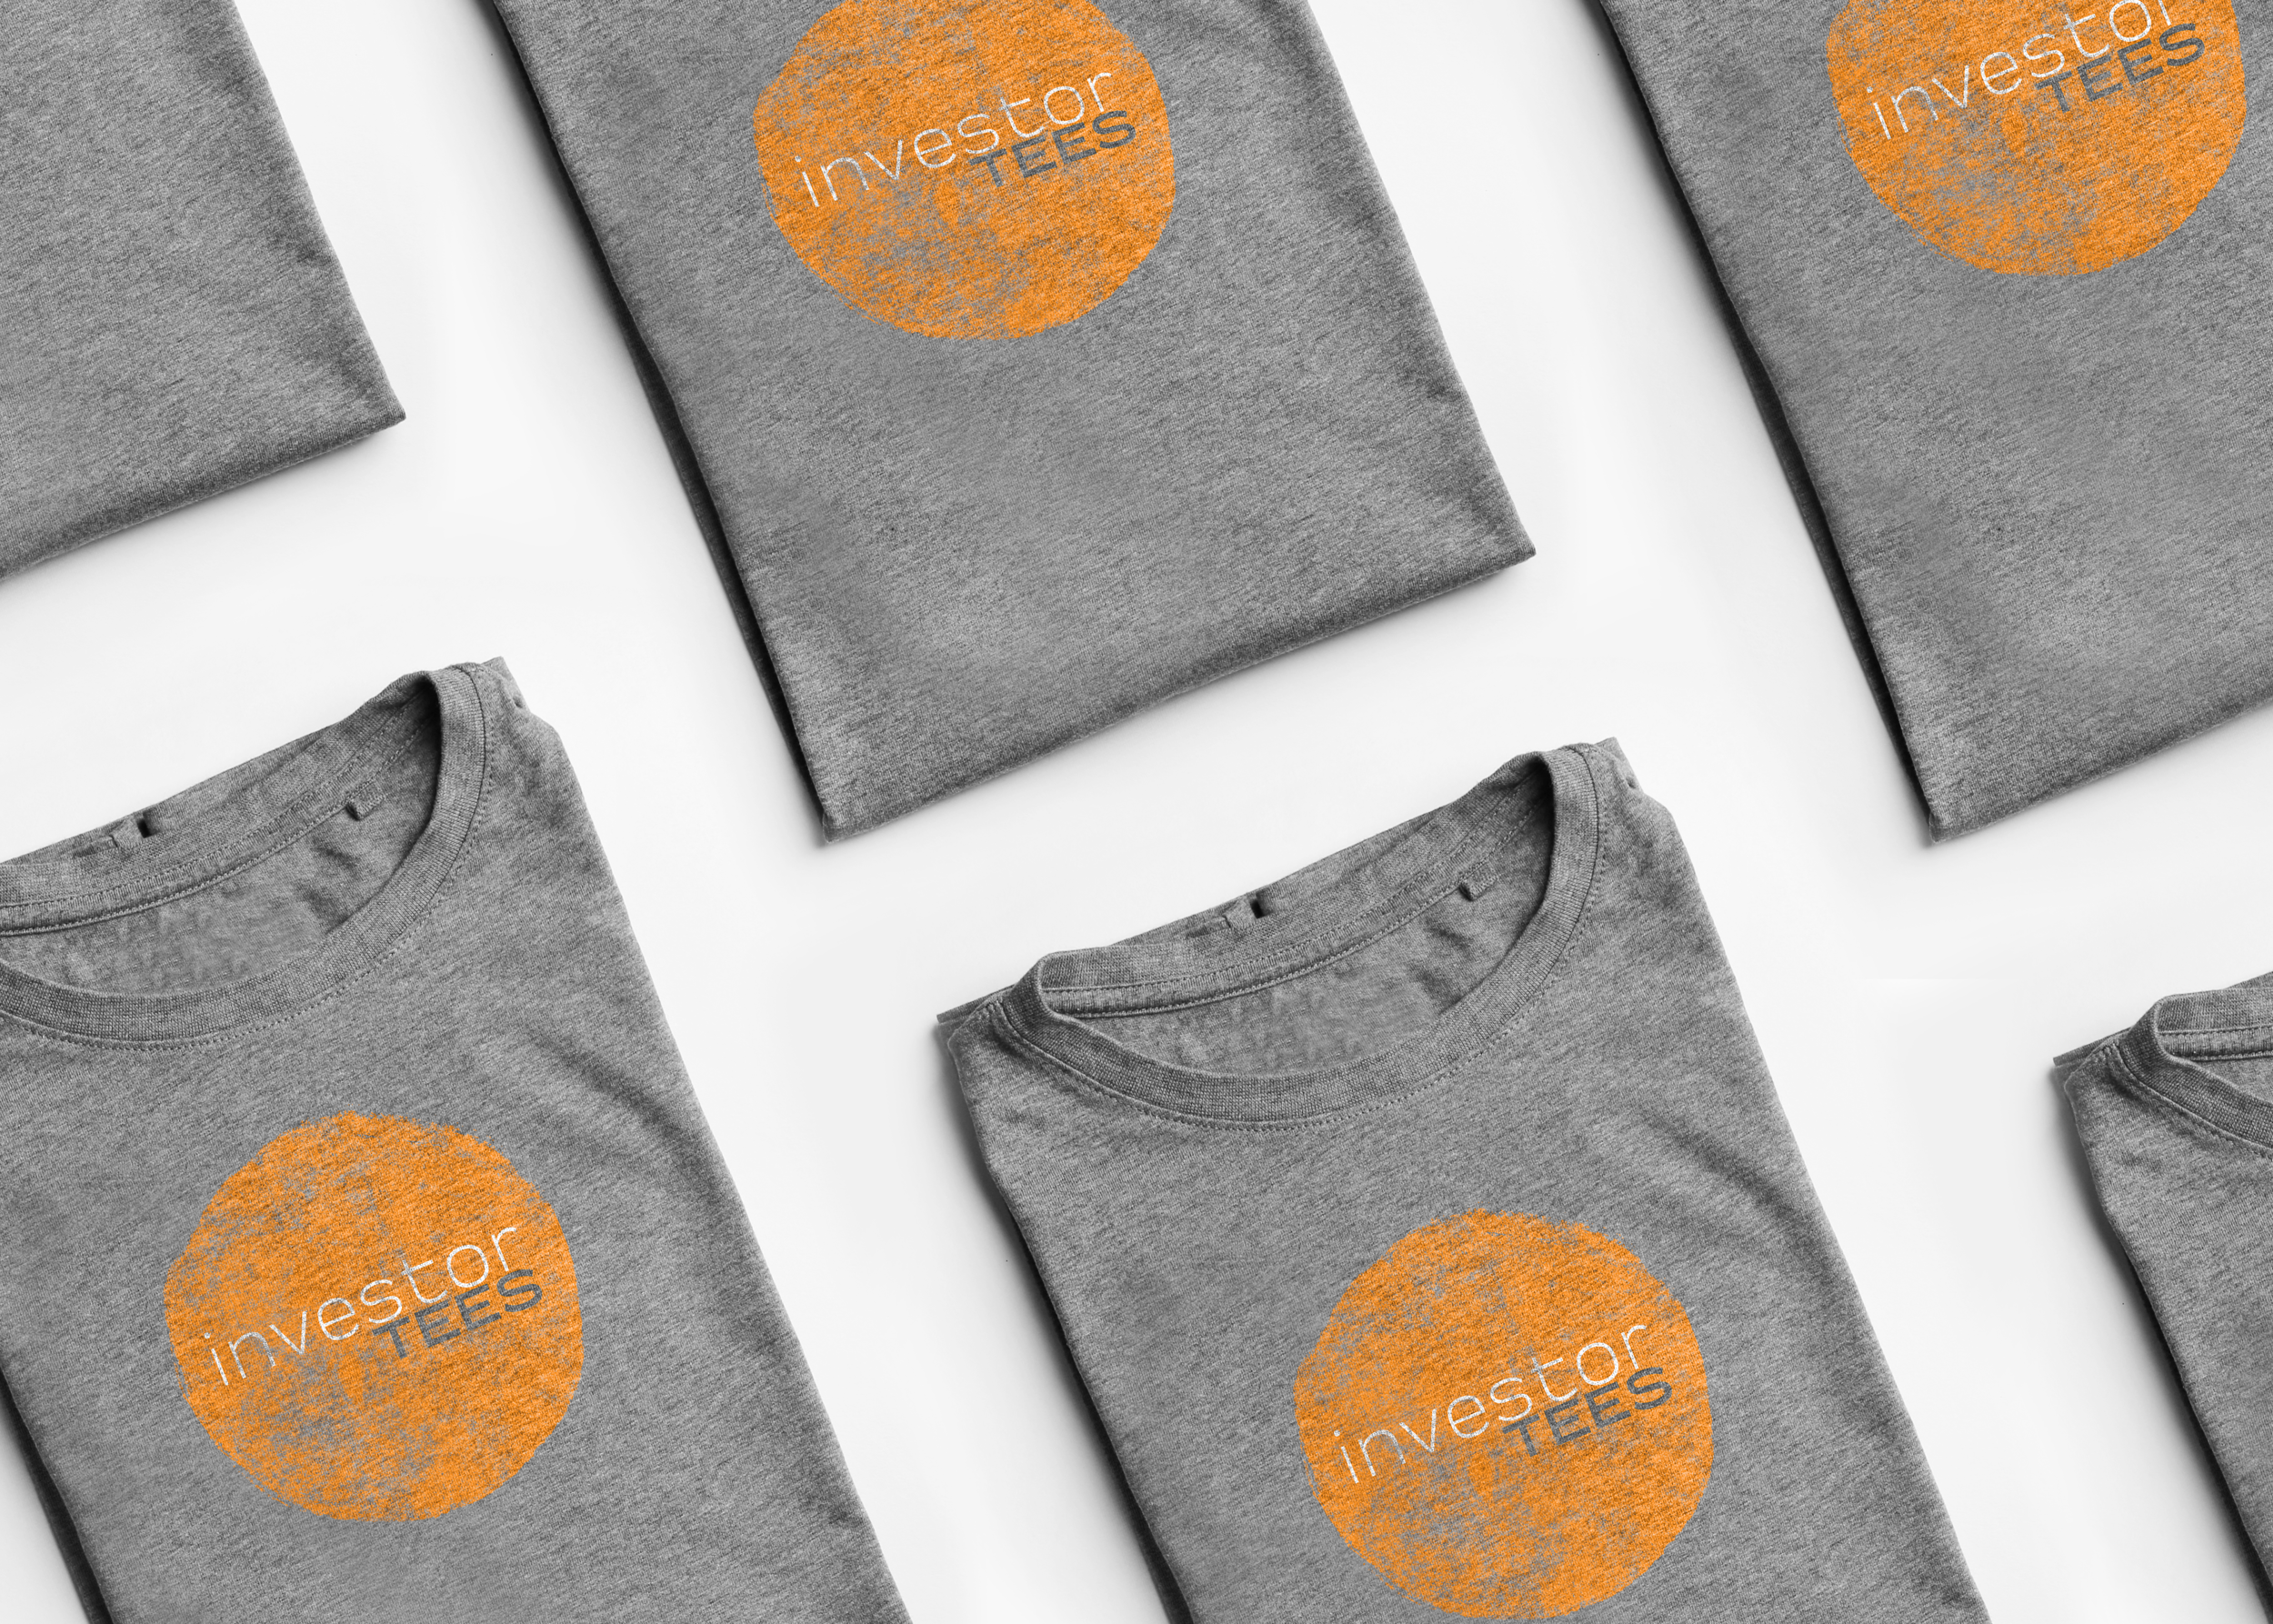 Our store features t-shirts and other merch for investors and traders.